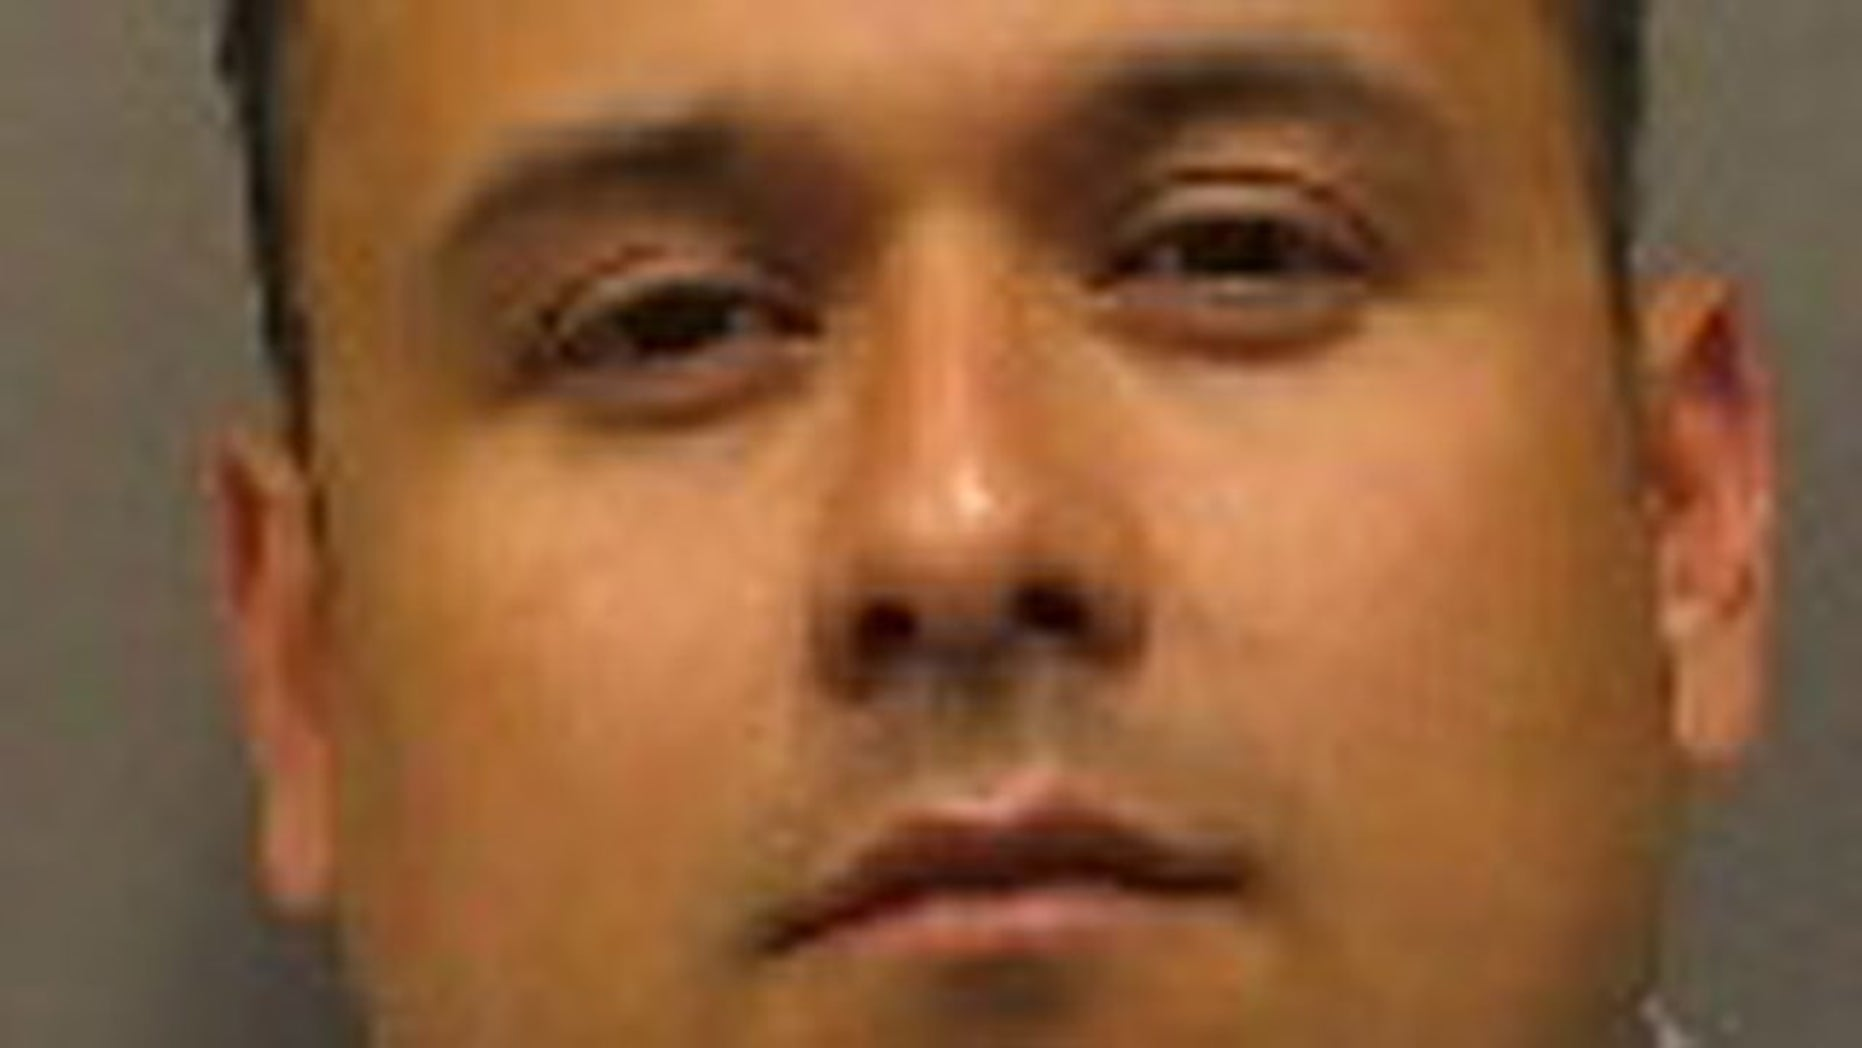 Juan Caballero, 38, of Airmont, N.Y., was sentenced to 13 years to life for sexually abusing the daughter of a 9/11 victim (Rockland County District Attorney's Office).